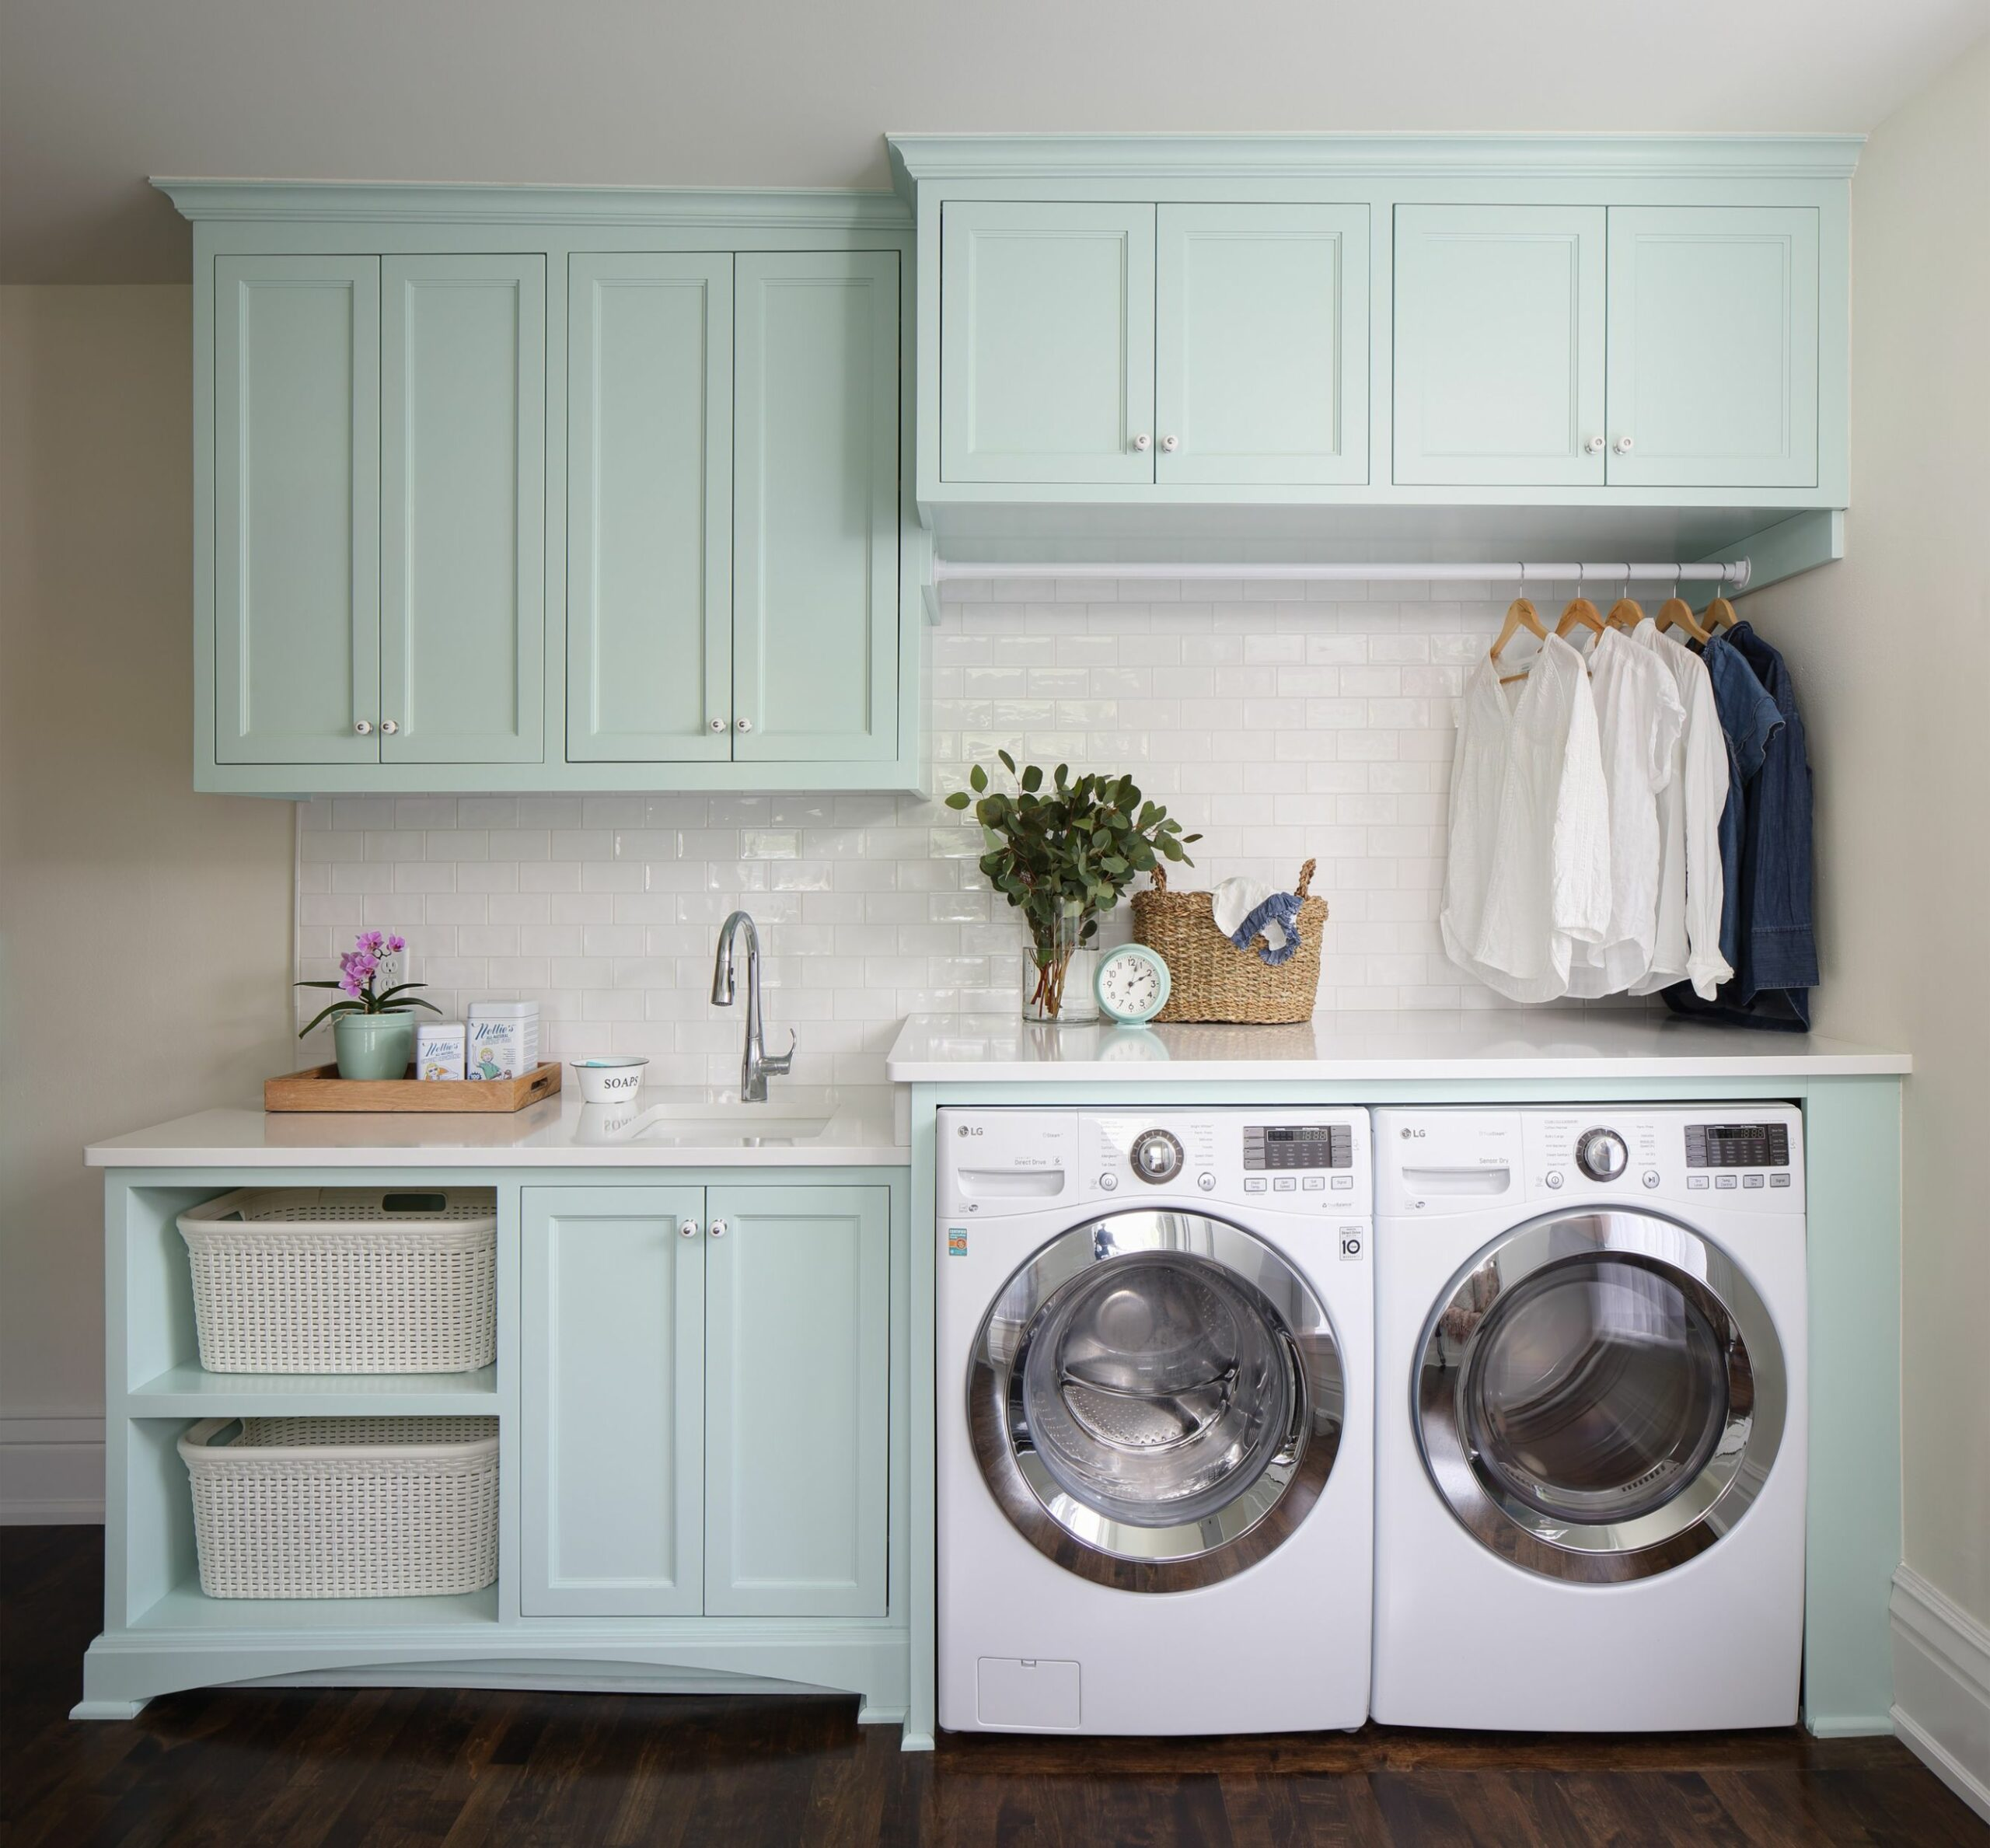 9 Beautiful Laundry Room Pictures & Ideas | Houzz - laundry room ideas india